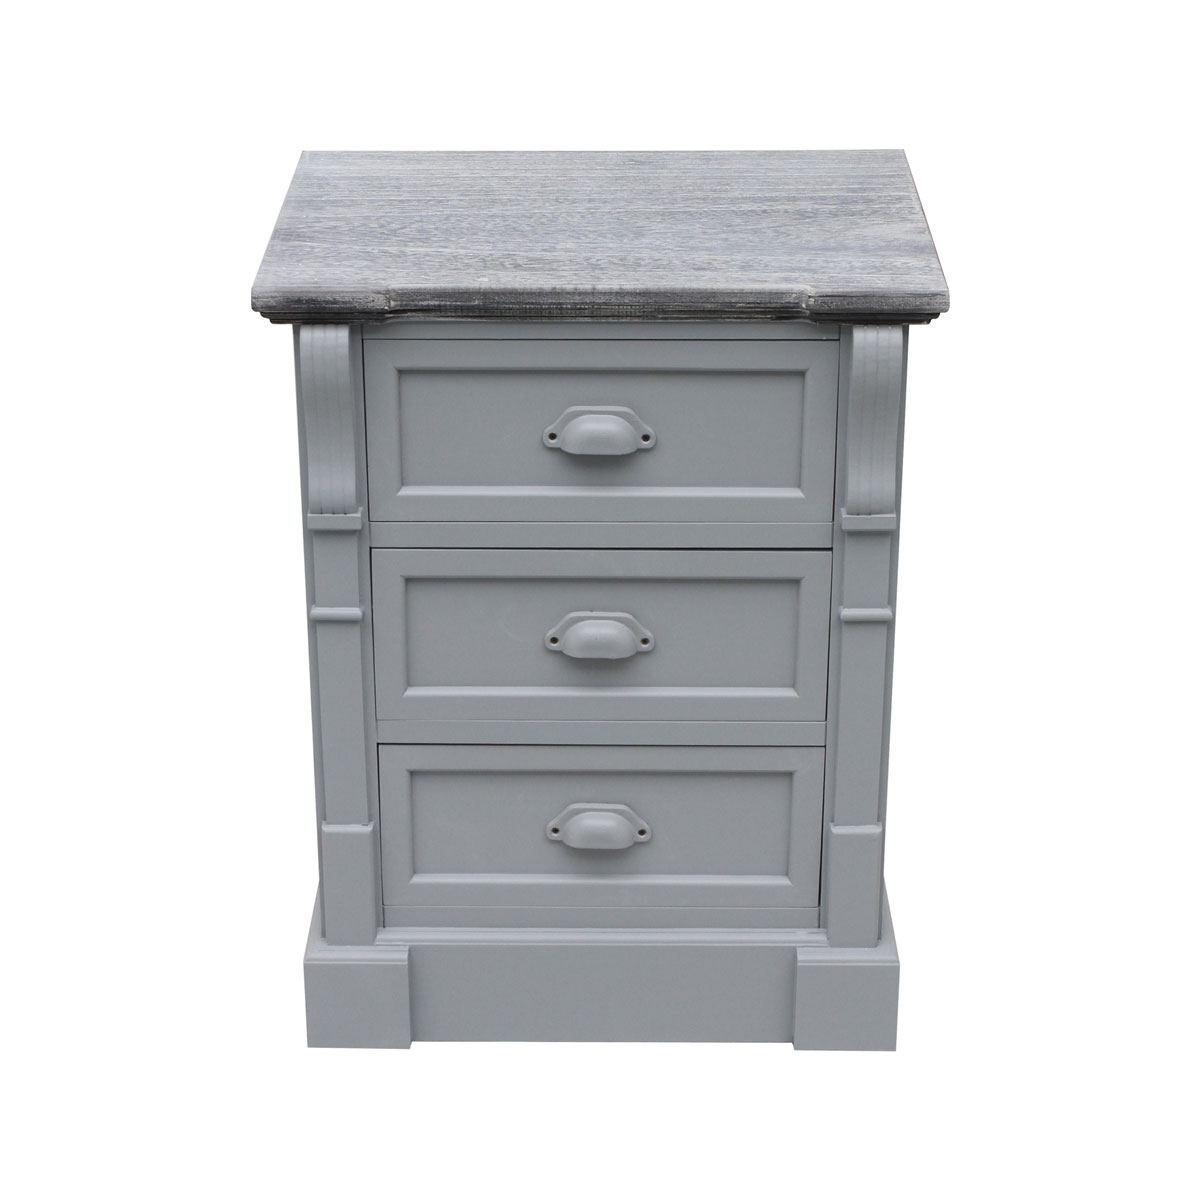 Details About Charles Bentley Shabby Chic 3 Drawer Bedside Table In Grey Made Of Mdf